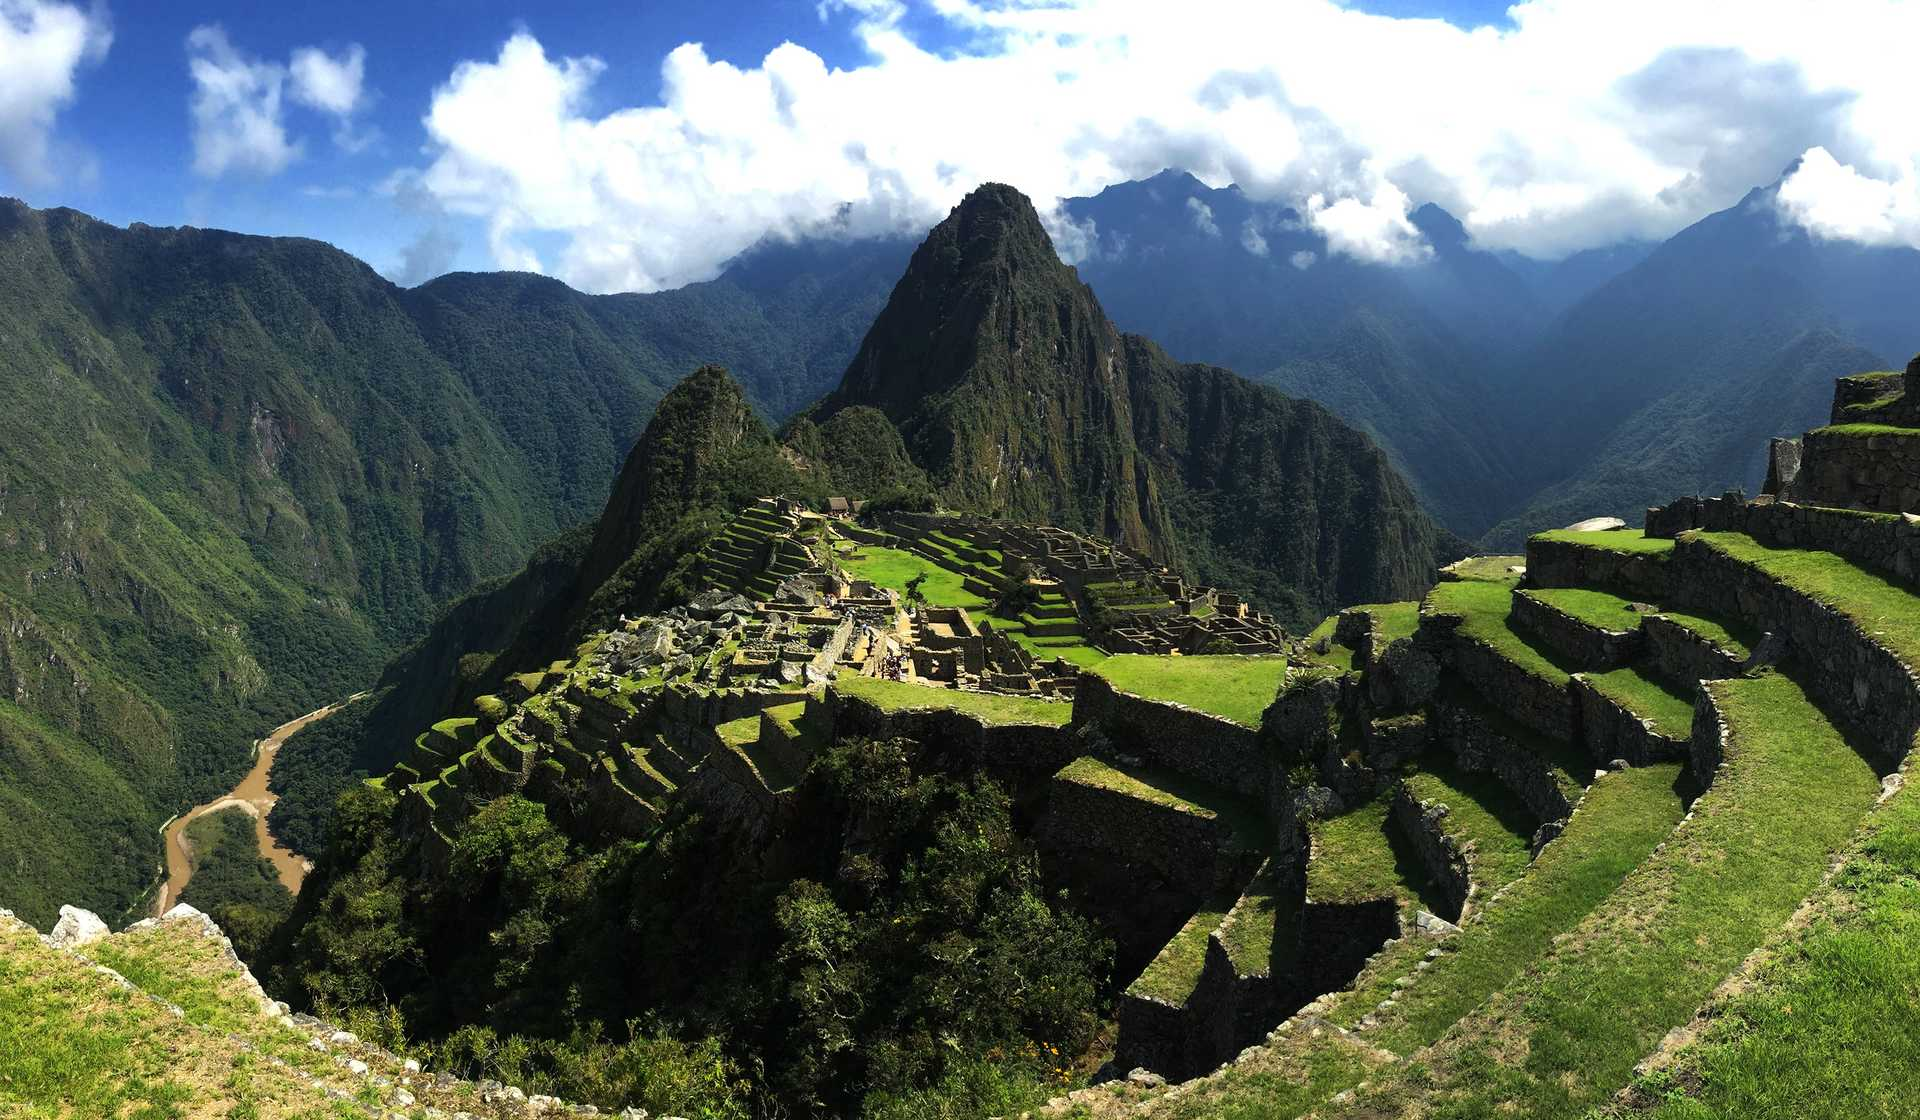 Panoramic view of the Machu Picchu